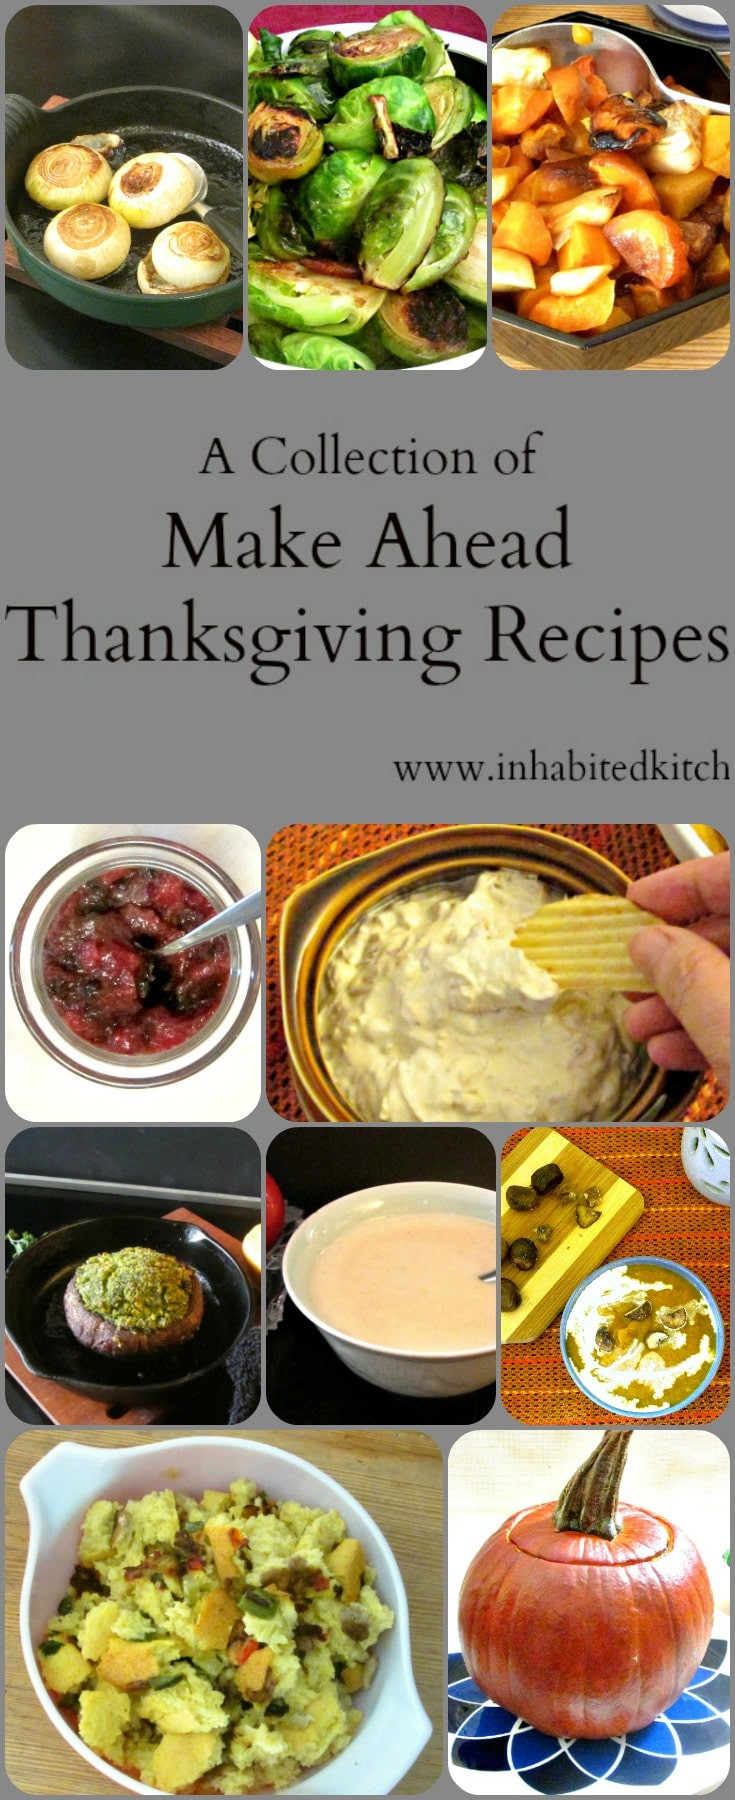 Make Ahead Thanksgiving  A Collection of Make Ahead Thanksgiving Recipes